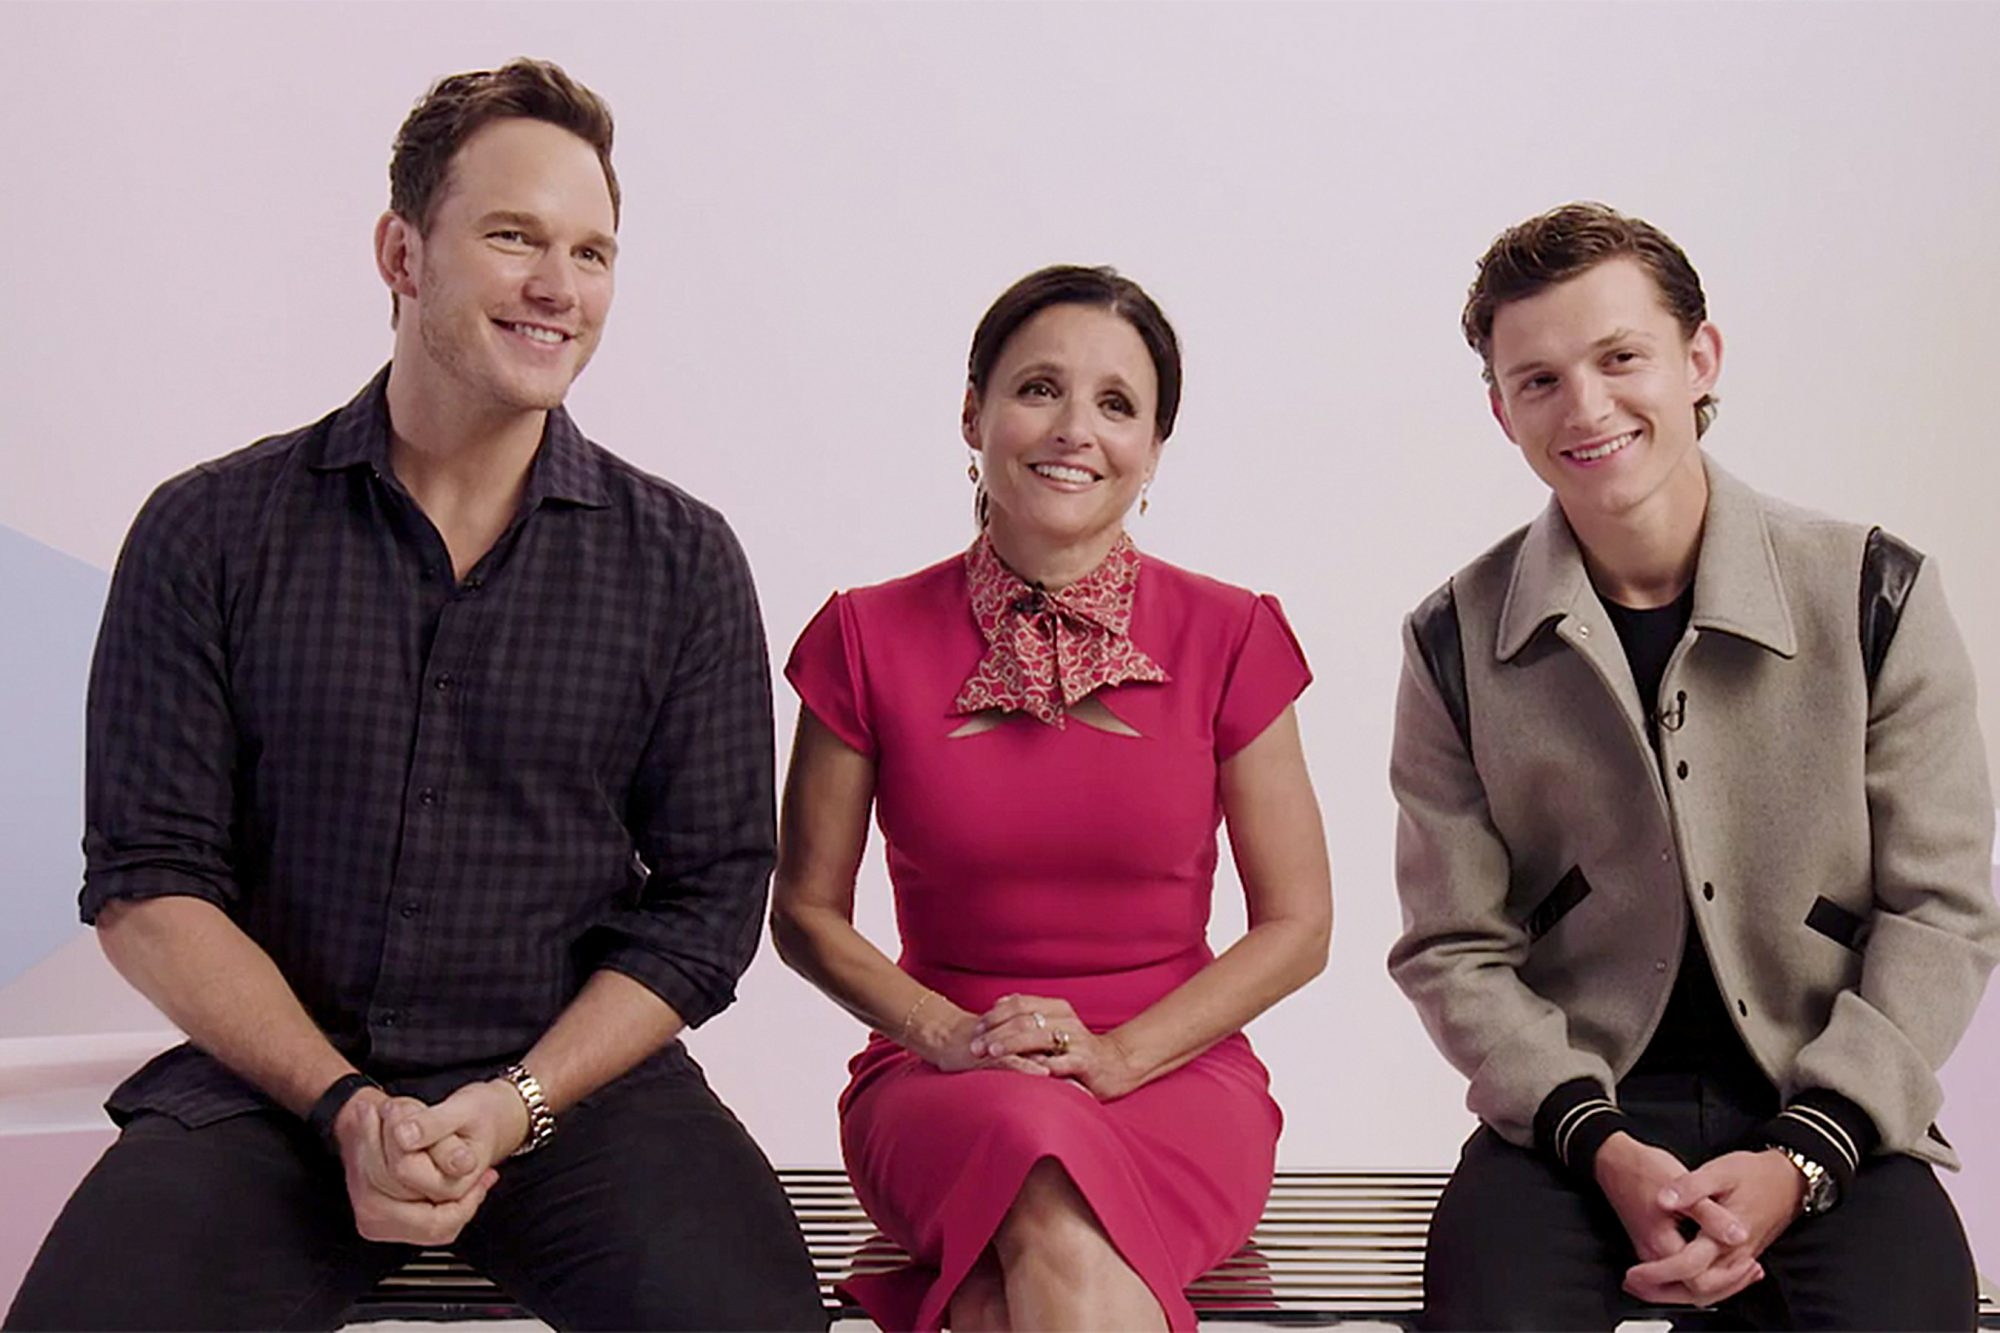 Chris Pratt, Julia Louis Drefus, and Tom Holland